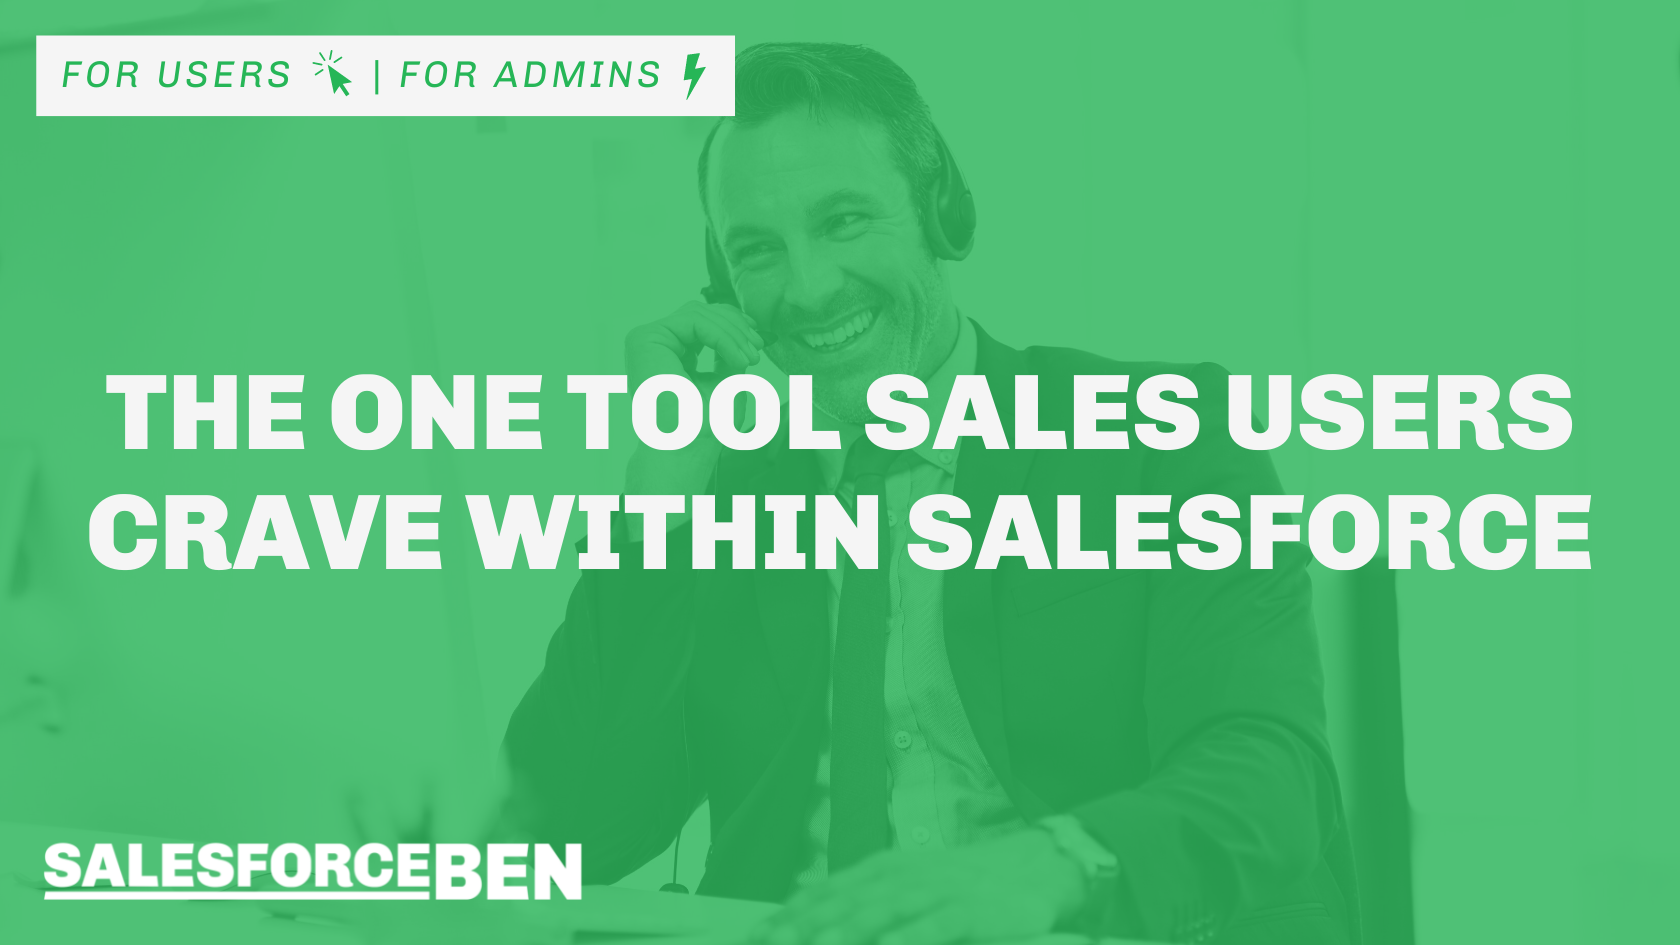 The One Tool Sales Users Crave Within Salesforce